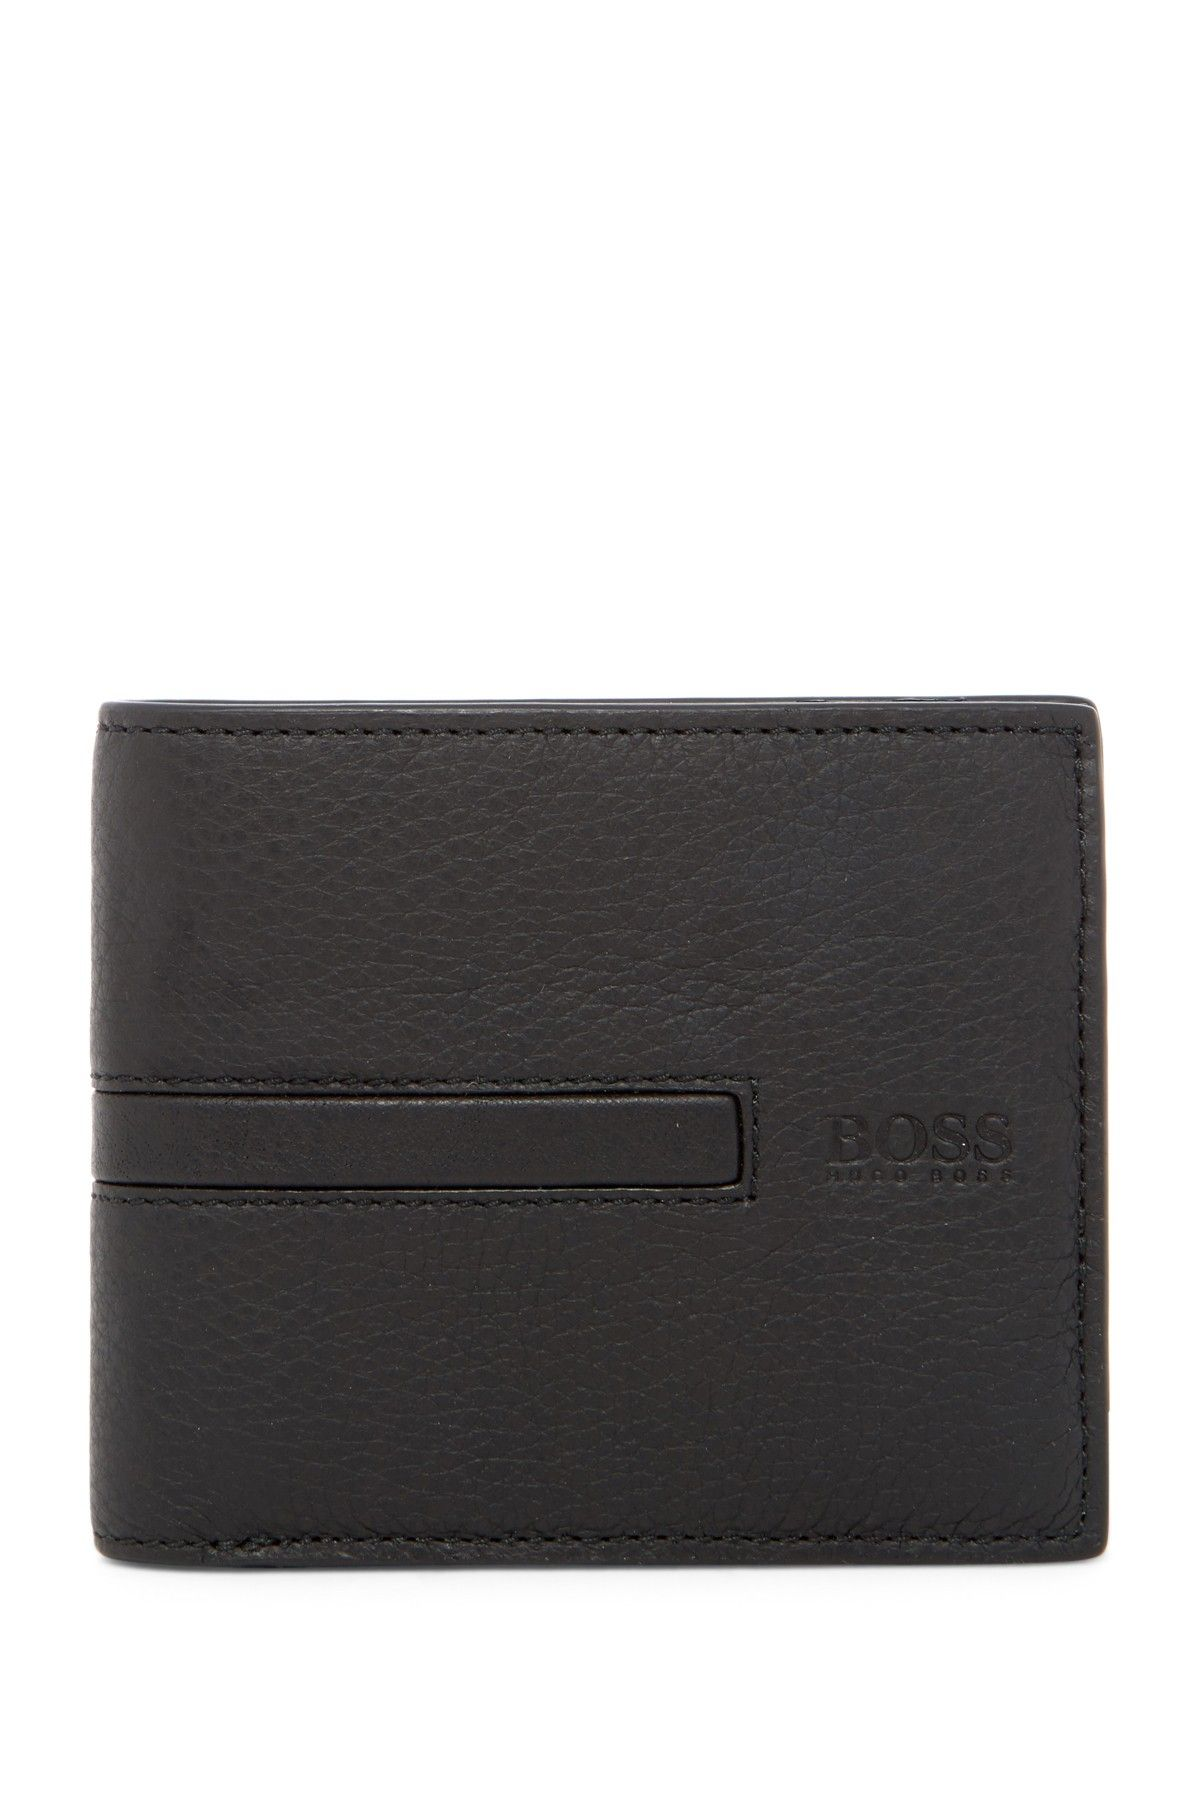 Galko Leather Wallet